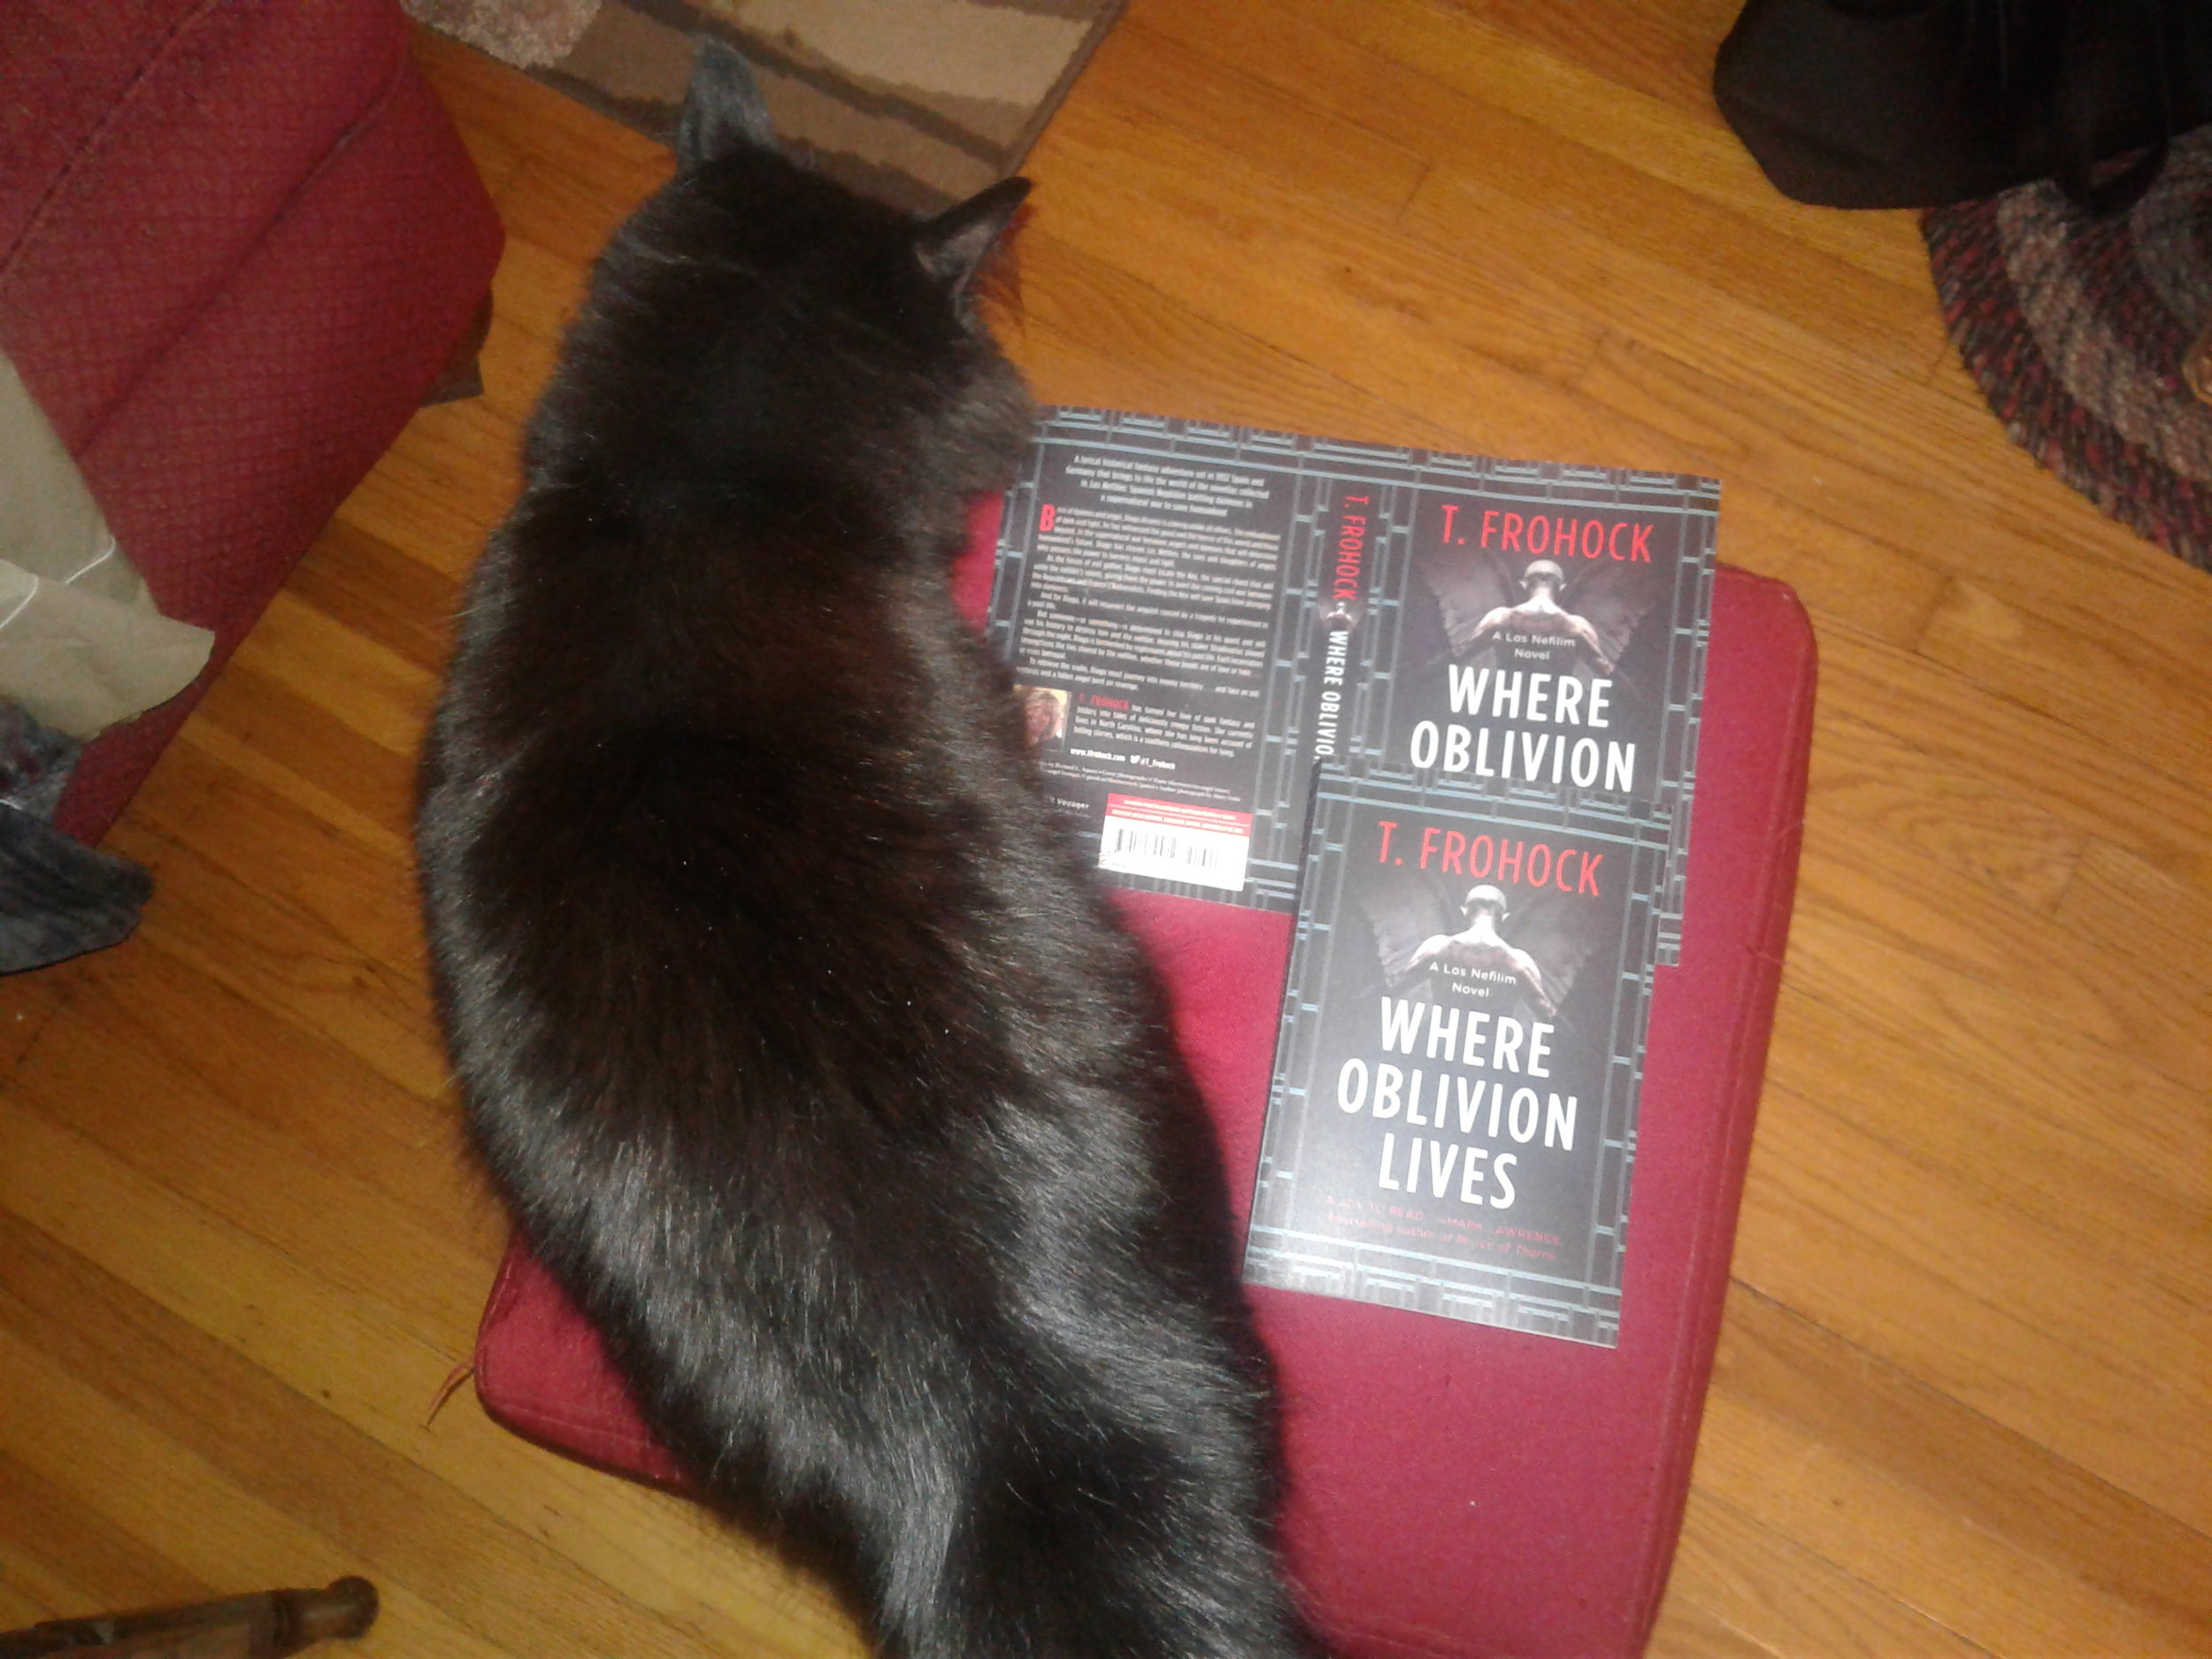 Emerson inspecting early copies of where oblivion lives and she gives them black cat approval.